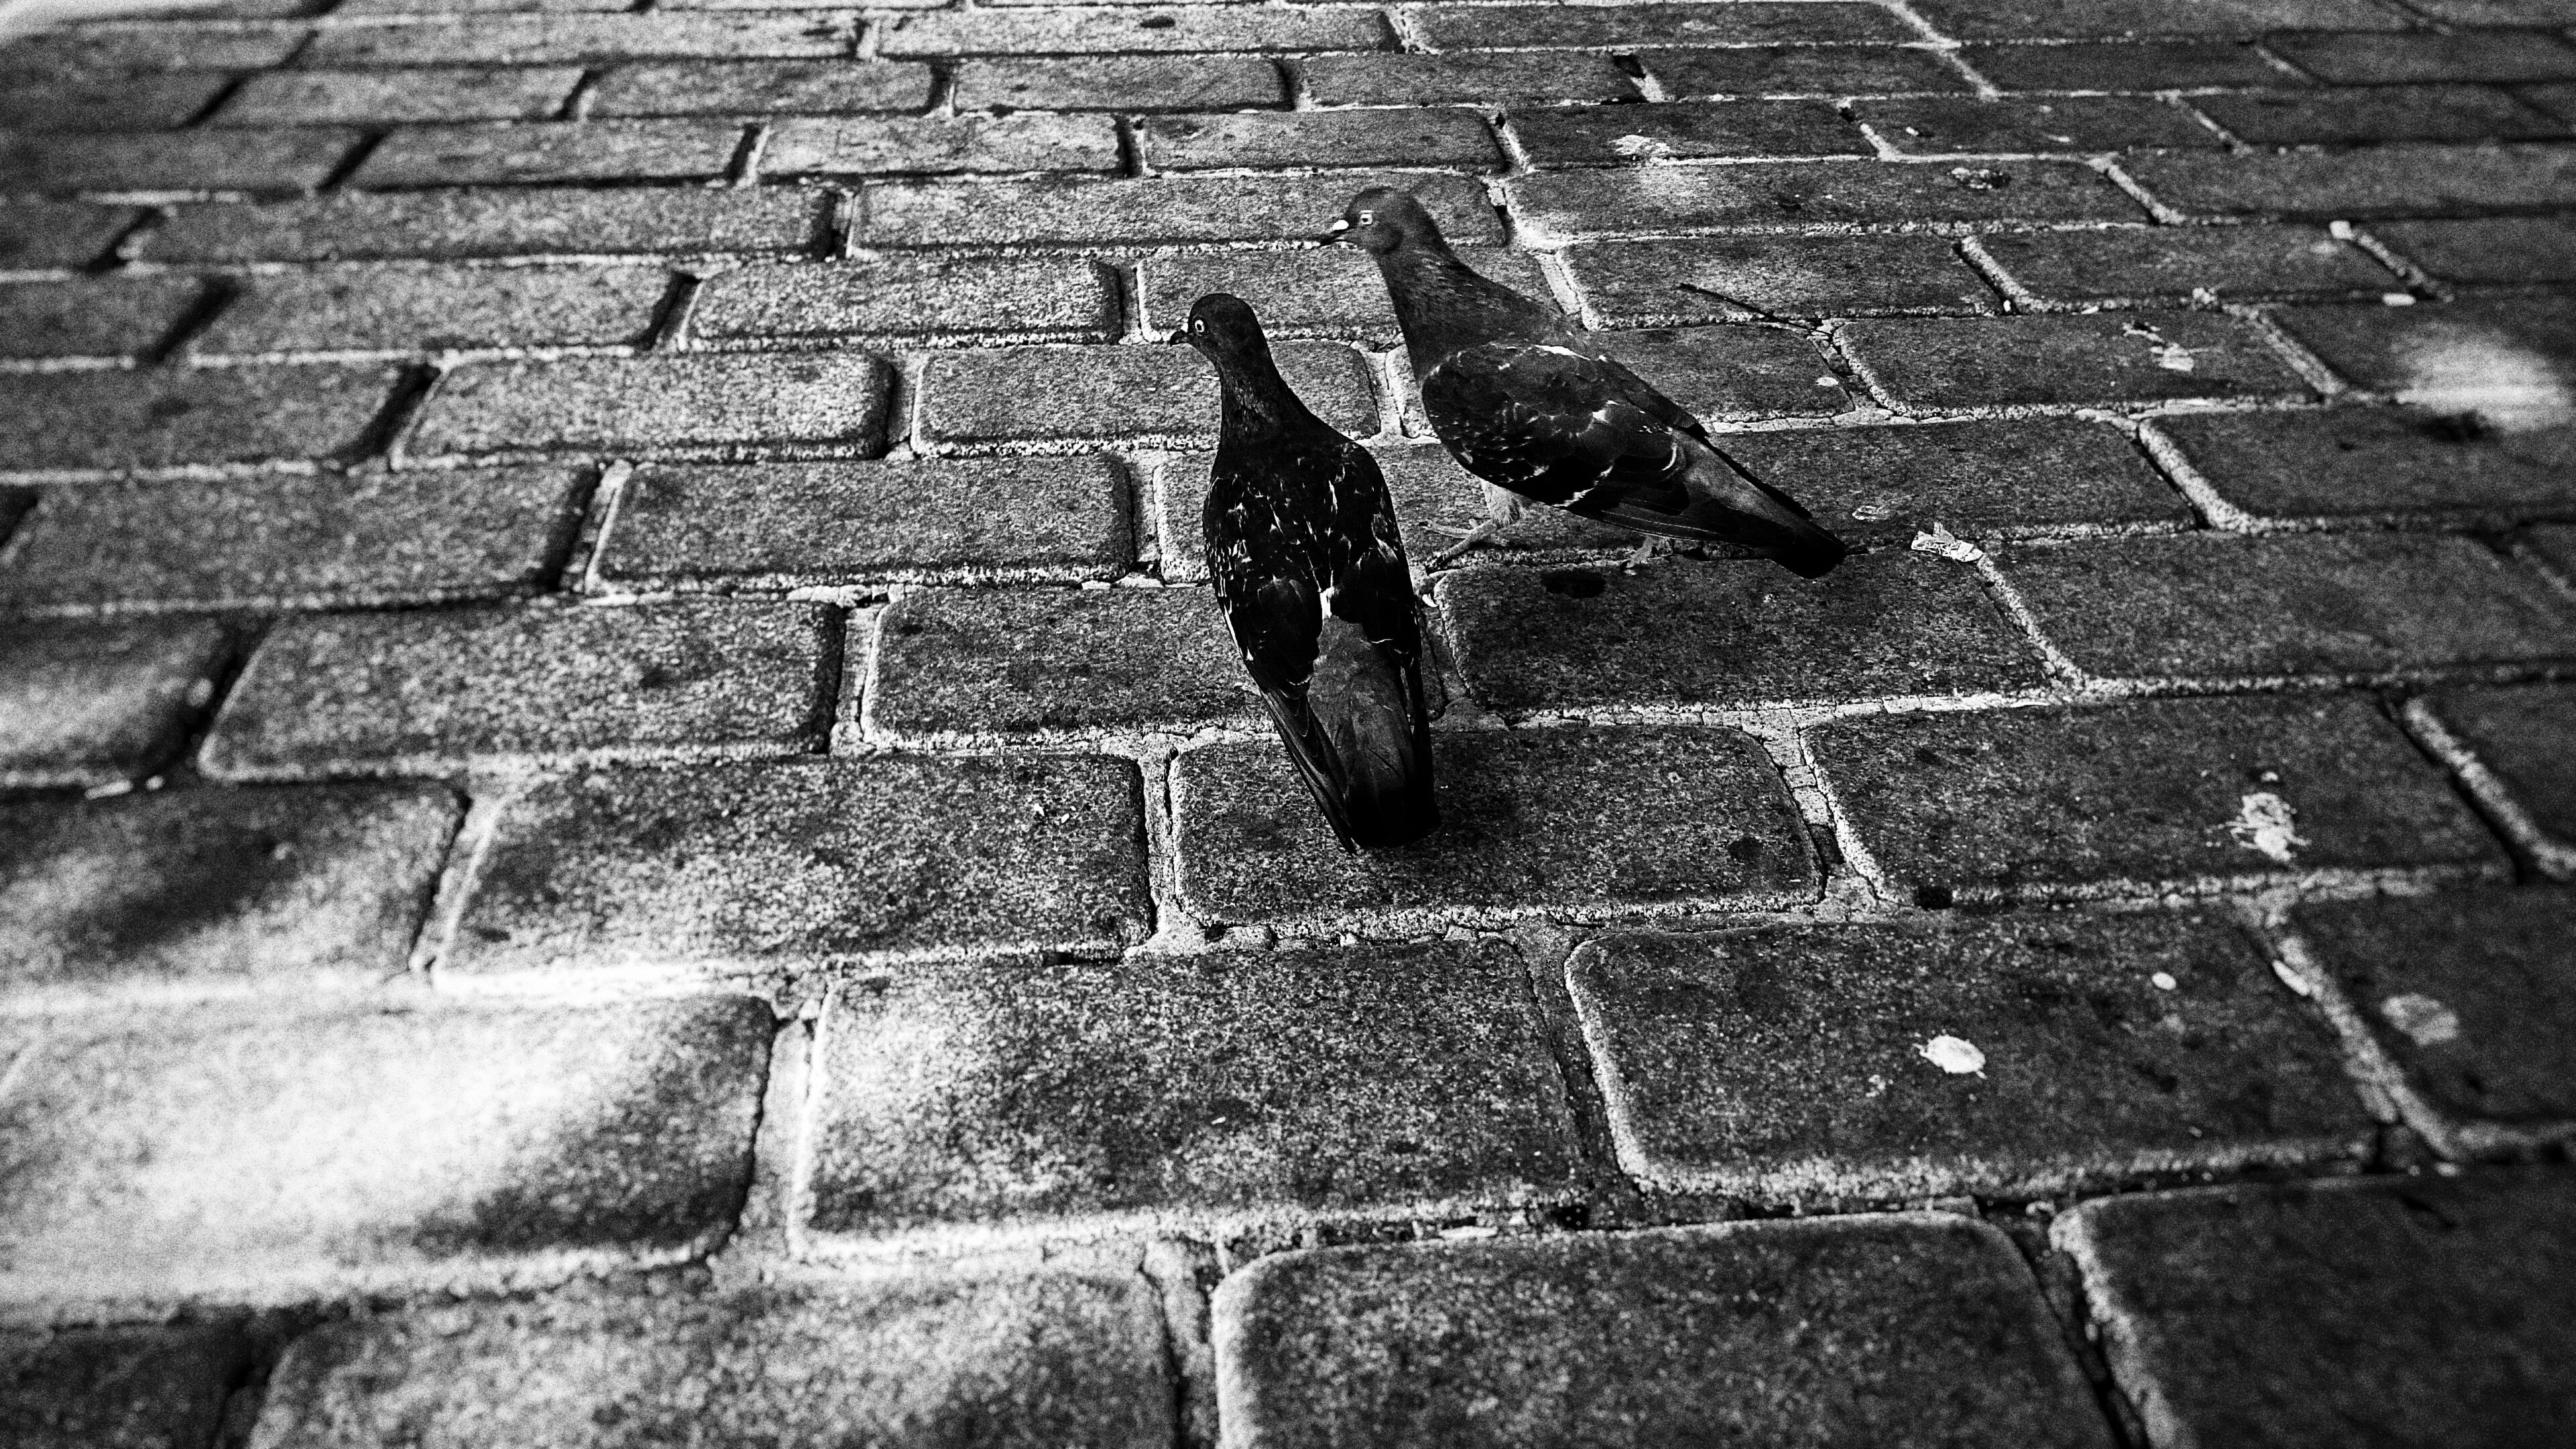 animal themes, one animal, animals in the wild, wildlife, street, zoology, day, outdoors, paving stone, footpath, no people, domestic animals